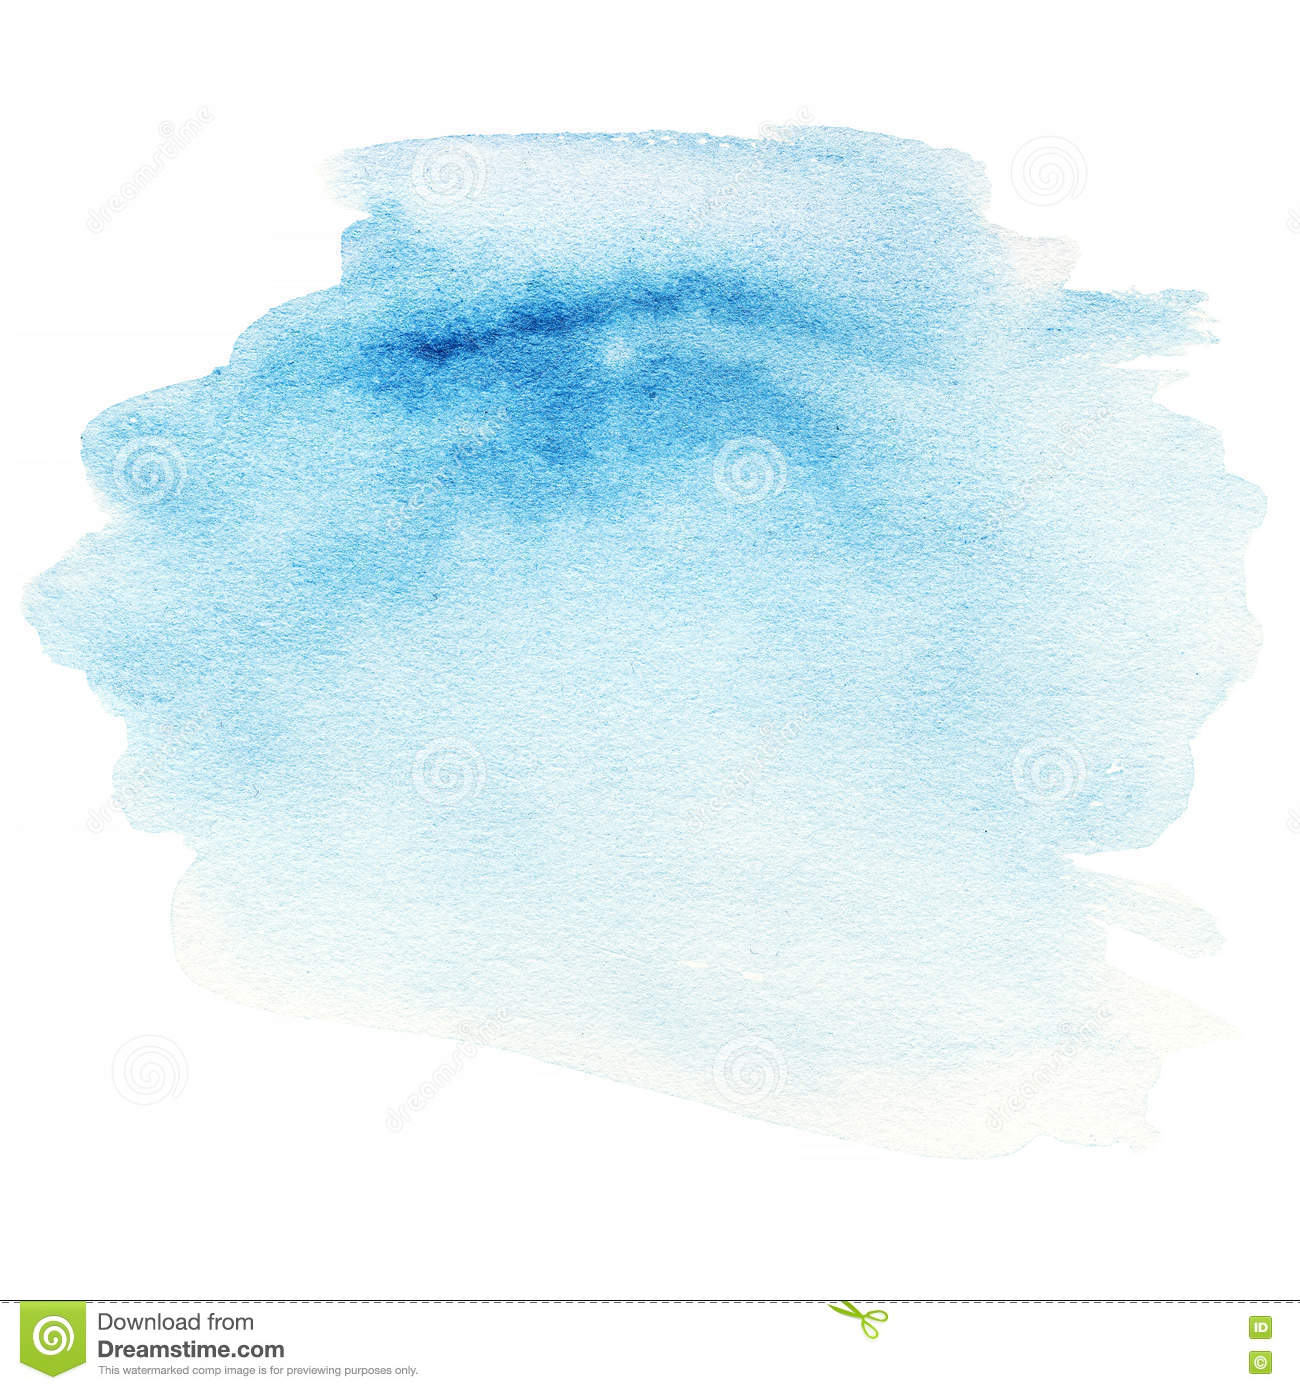 Watercolor splatter vector abstract watercolor background - Colorful Blue Watercolor Splash Background Abstract Ink